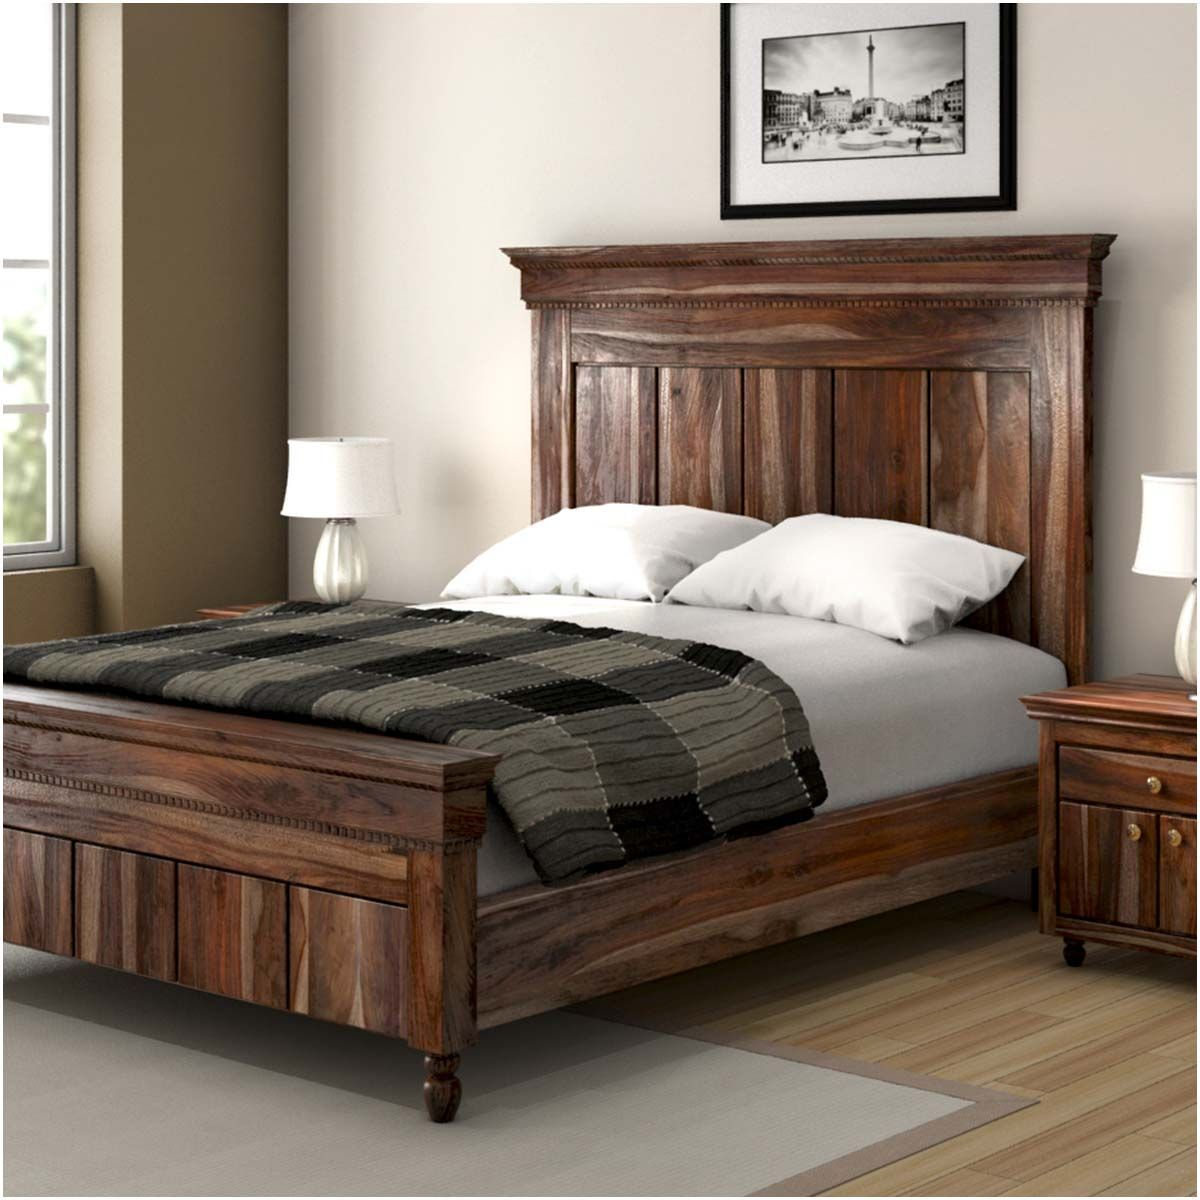 Sierra Living Concepts | Discount bedroom furniture ...